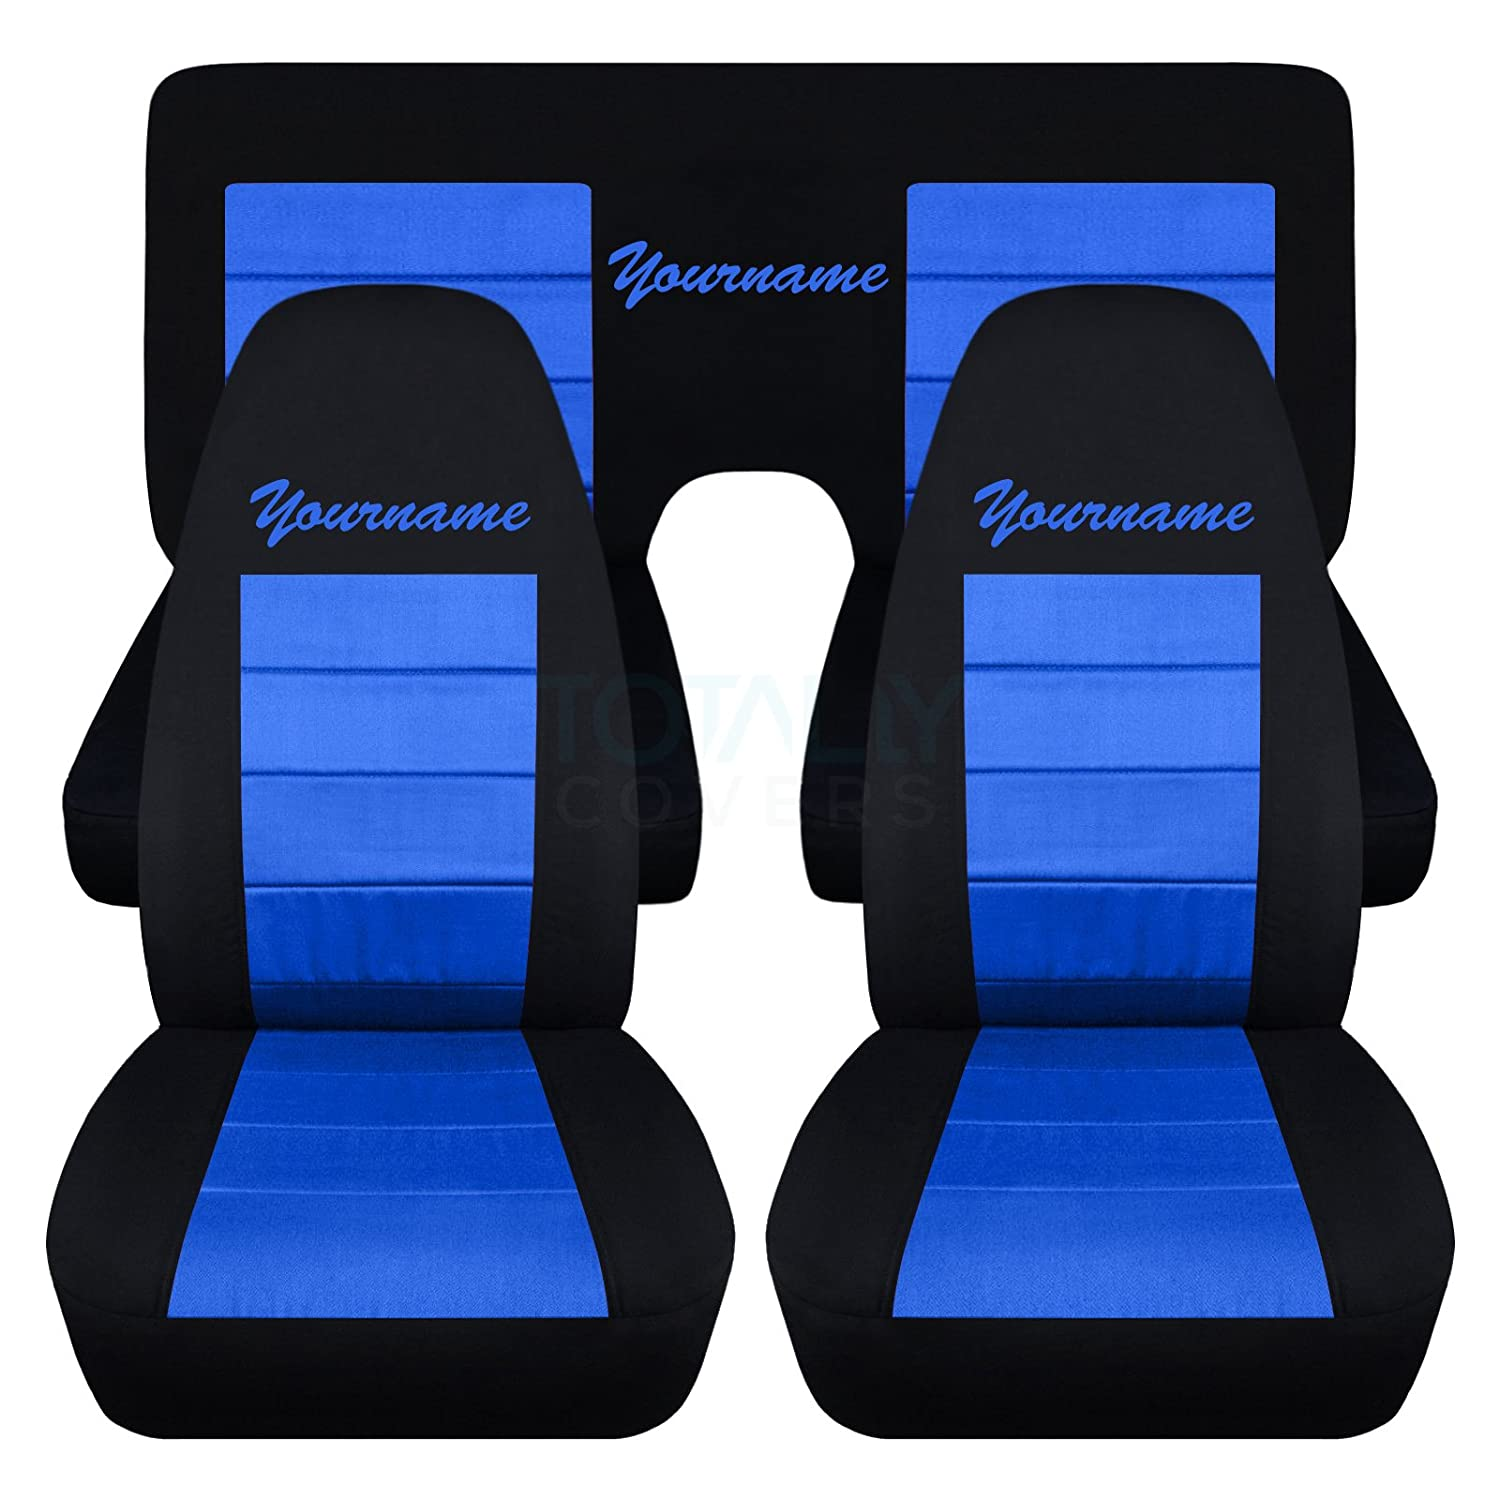 Totally Covers Fits 1970-1981 Chevy Camaro 2-Tone Seat Covers with Your  Name/Text: Black & Blue - Full Set (22 Colors) Coupe 2nd Generation  Chevrolet